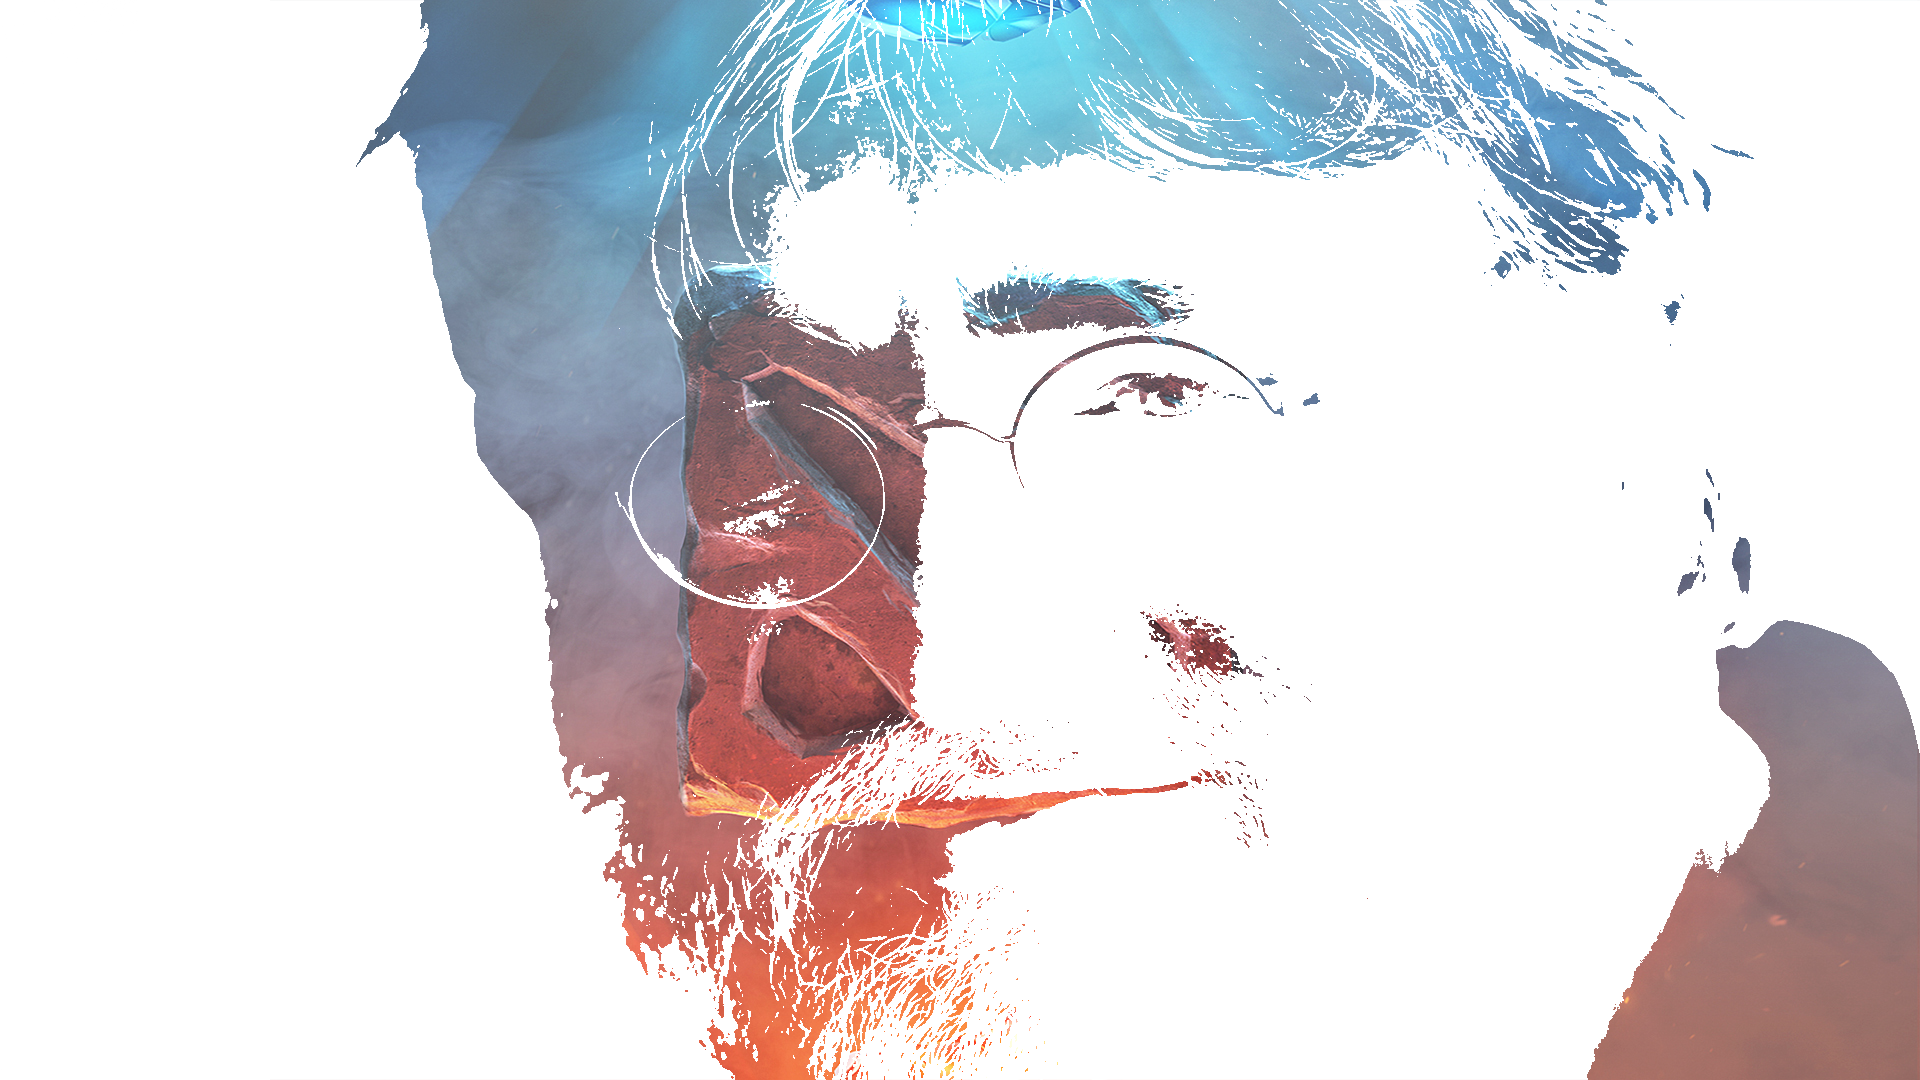 gabe newell wallpaper - photo #23